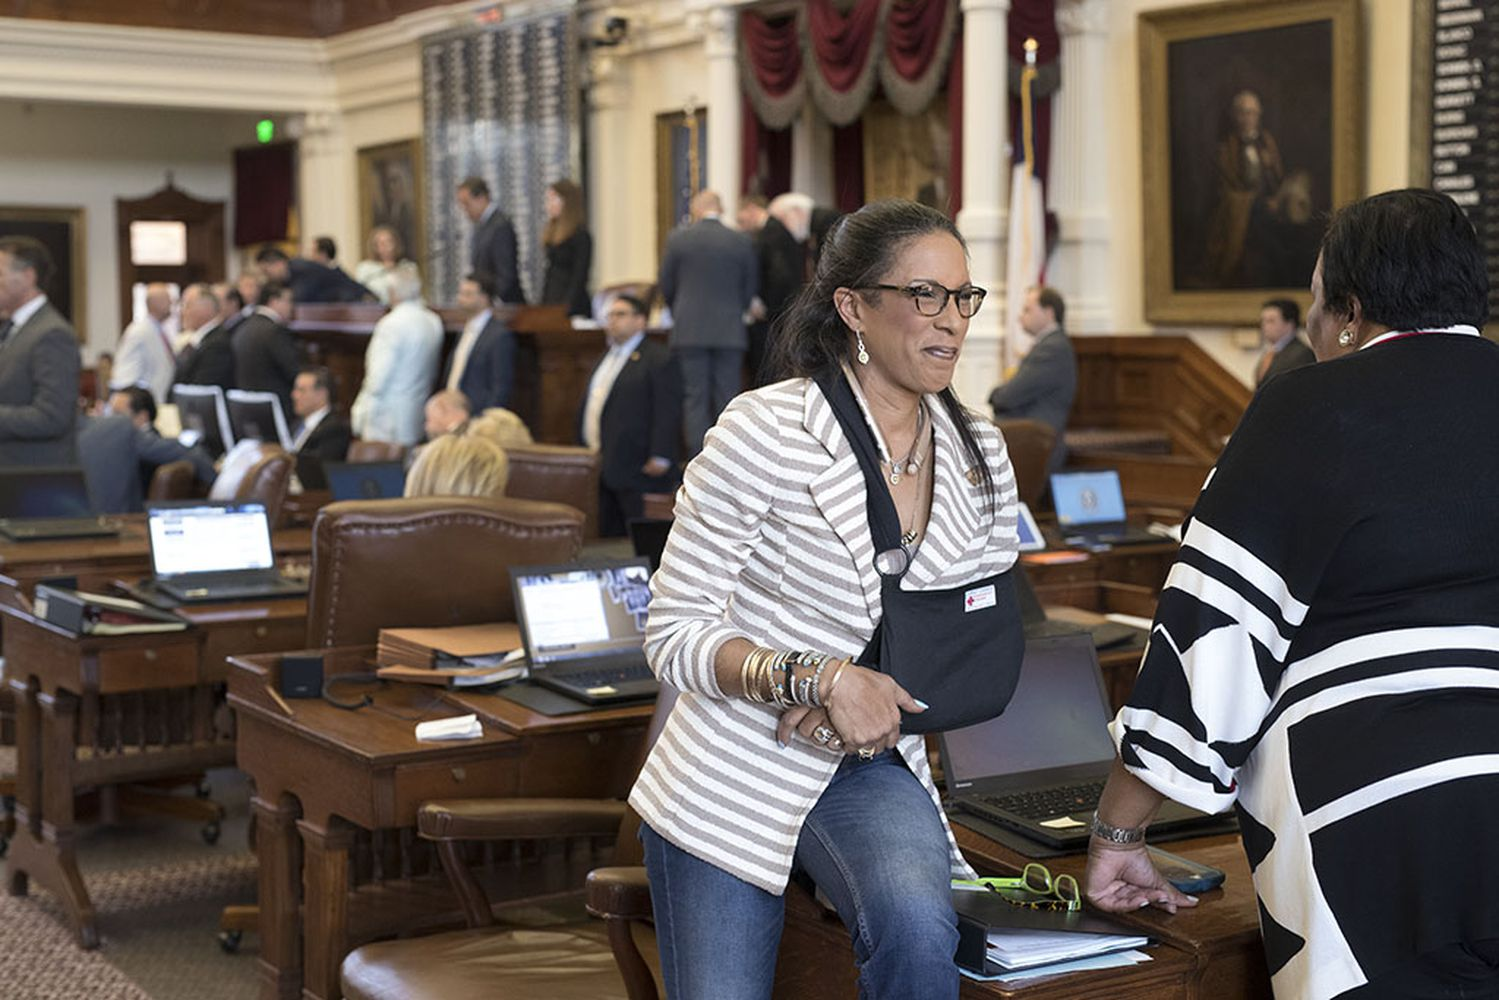 State Rep. Dawnna Dukes, D-Austin, chats on the House floor on August 1, 2017. Dukes faces a deadline to resign from office or face corruption charges from the Travis County District Attorney's Office.